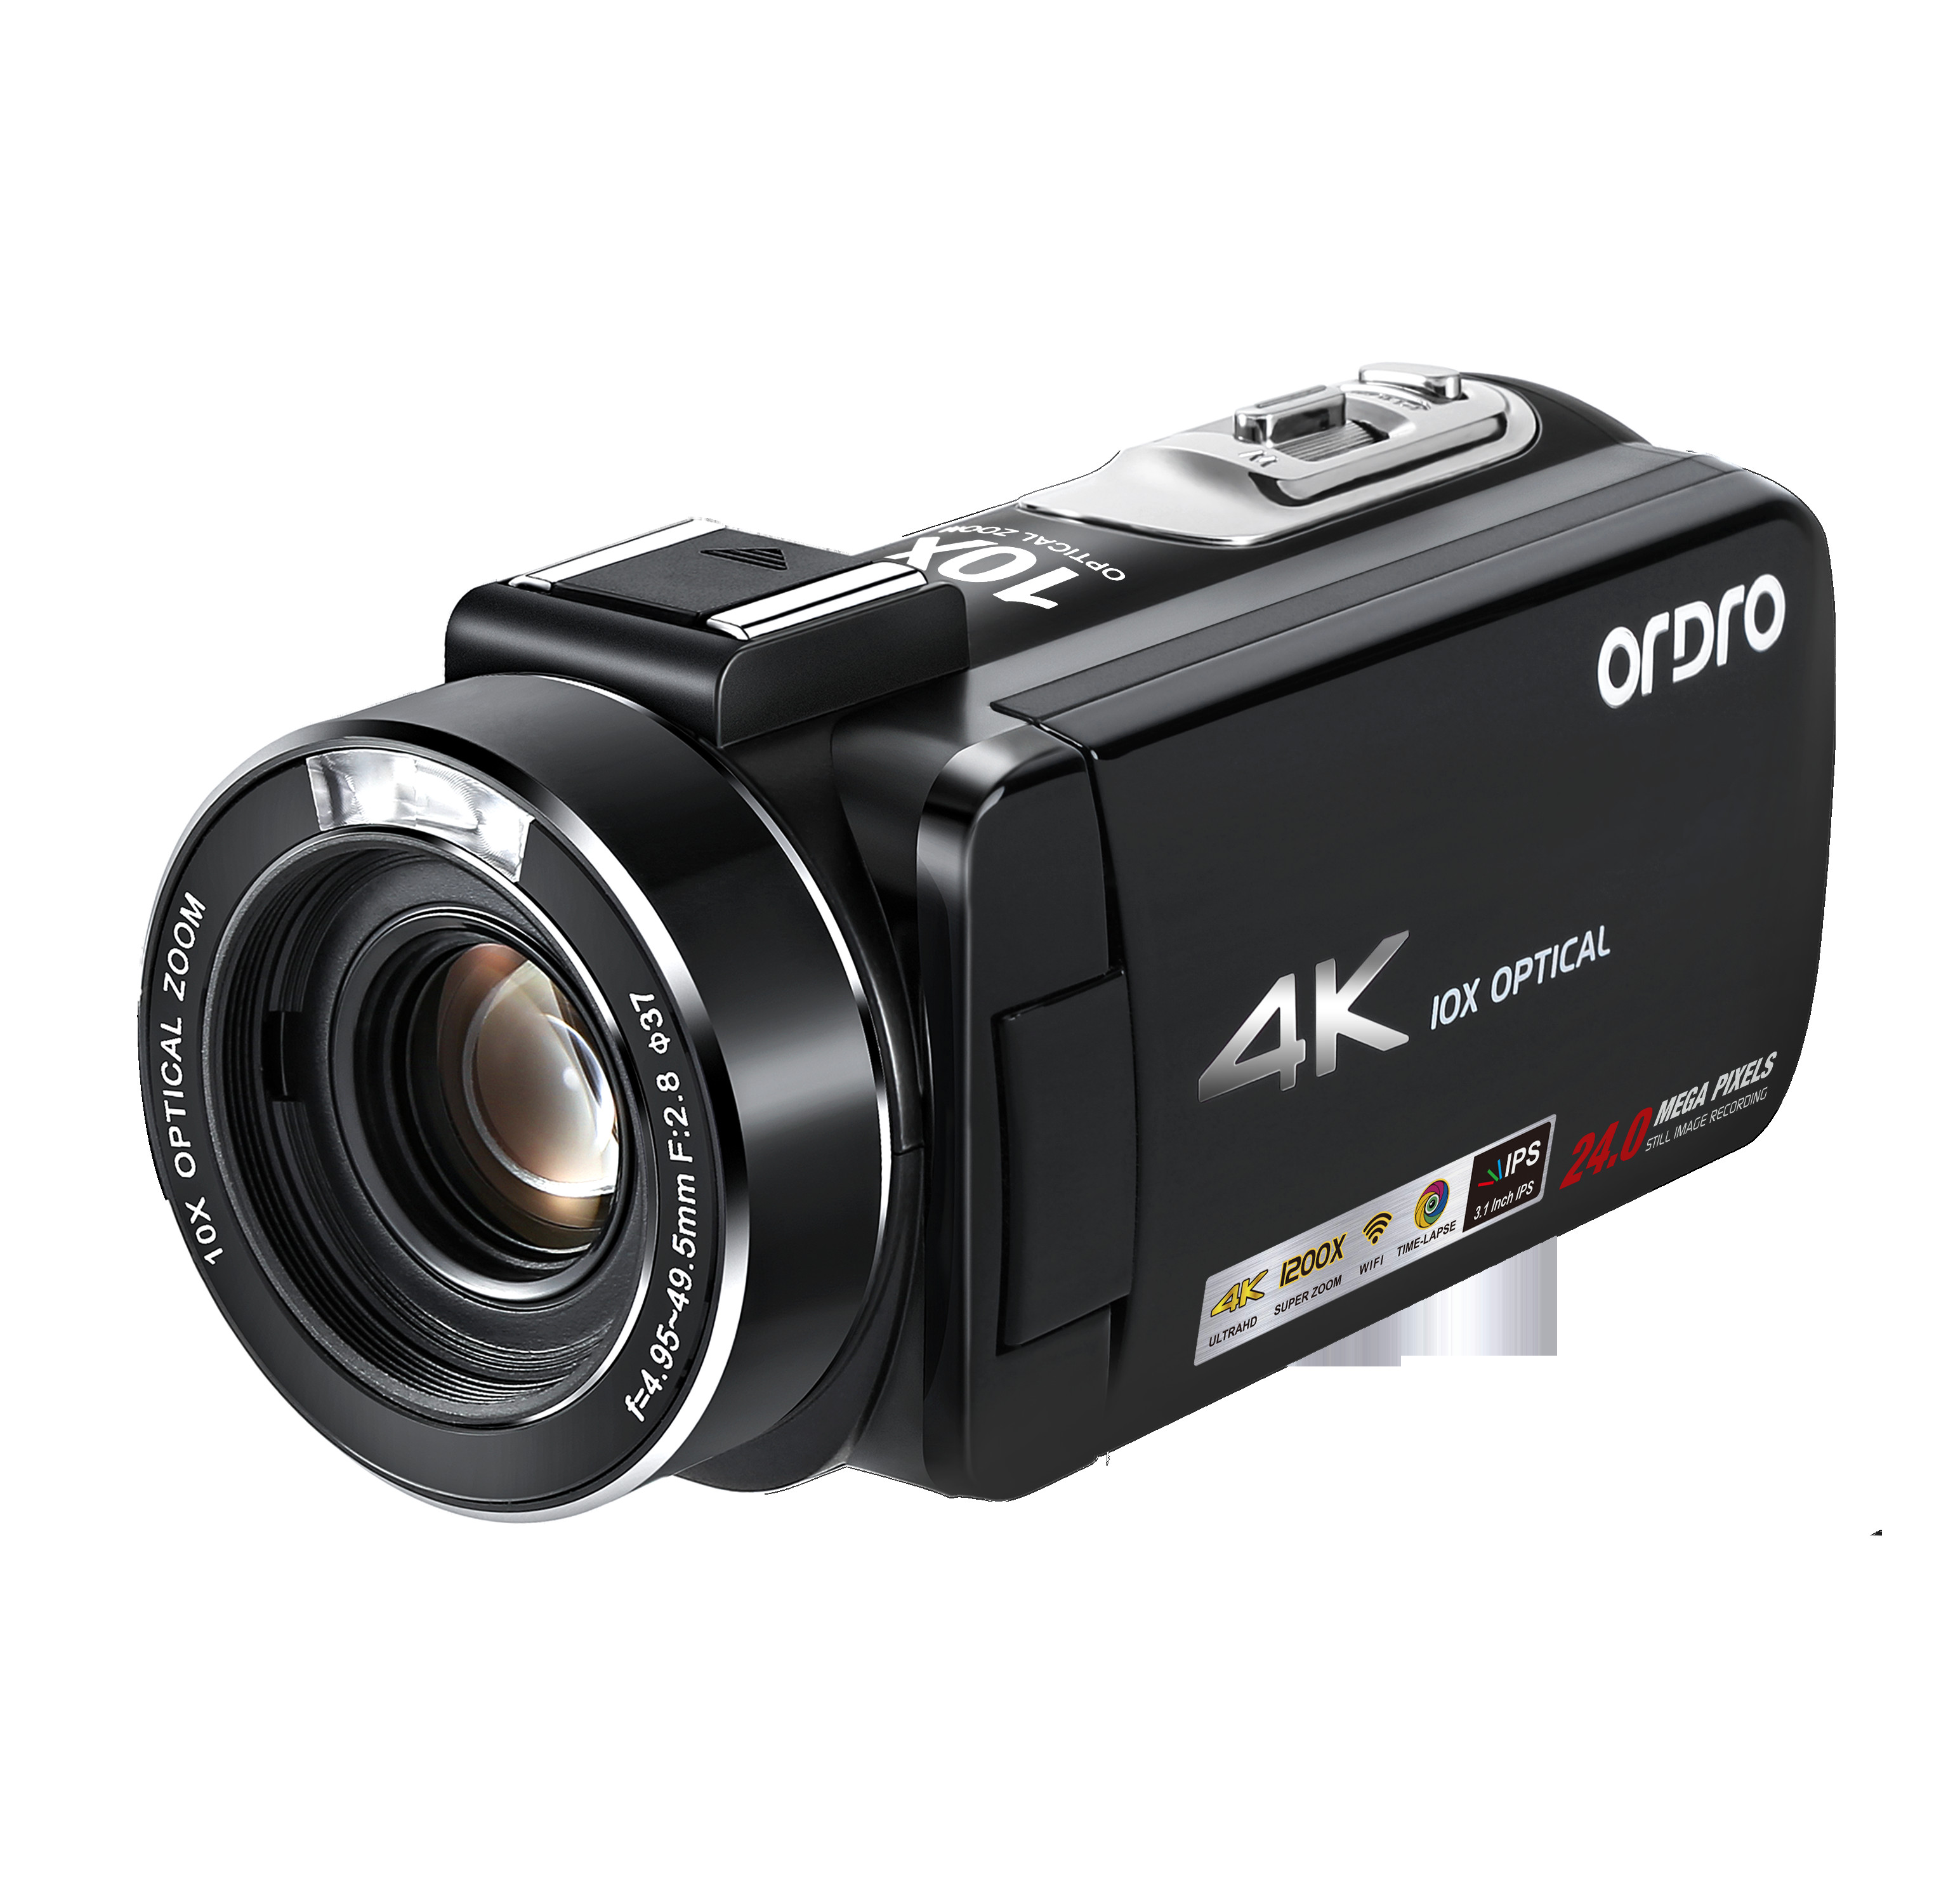 Ordro AC7 4K HD WIFI 24MP Digital Camera Infrared Video Recorder Night Vision 10xoptical Zoom PC For Live SteamingOrdro AC7 4K HD WIFI 24MP Digital Camera Infrared Video Recorder Night Vision 10xoptical Zoom PC For Live Steaming